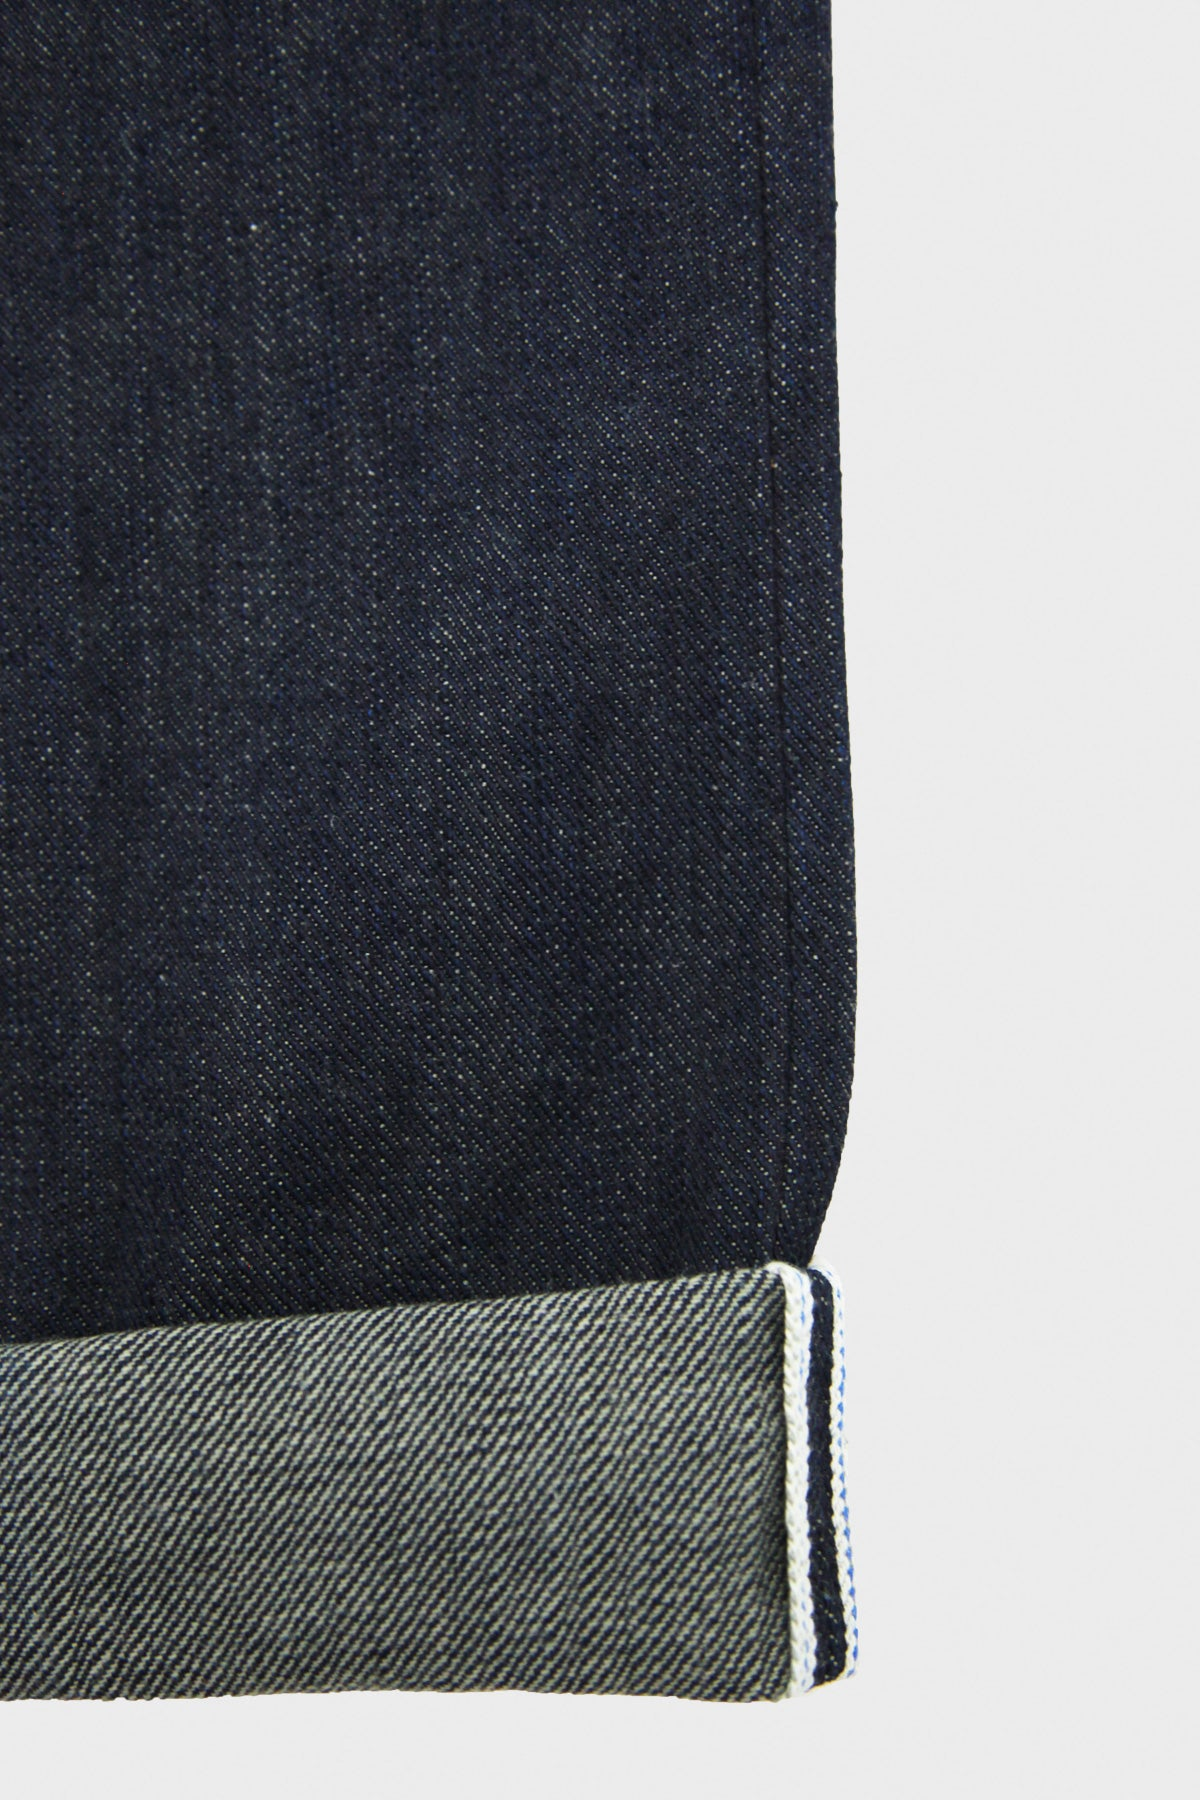 Pure Blue Japan - Tapered Slim - Left Hand Twill - Canoe Club